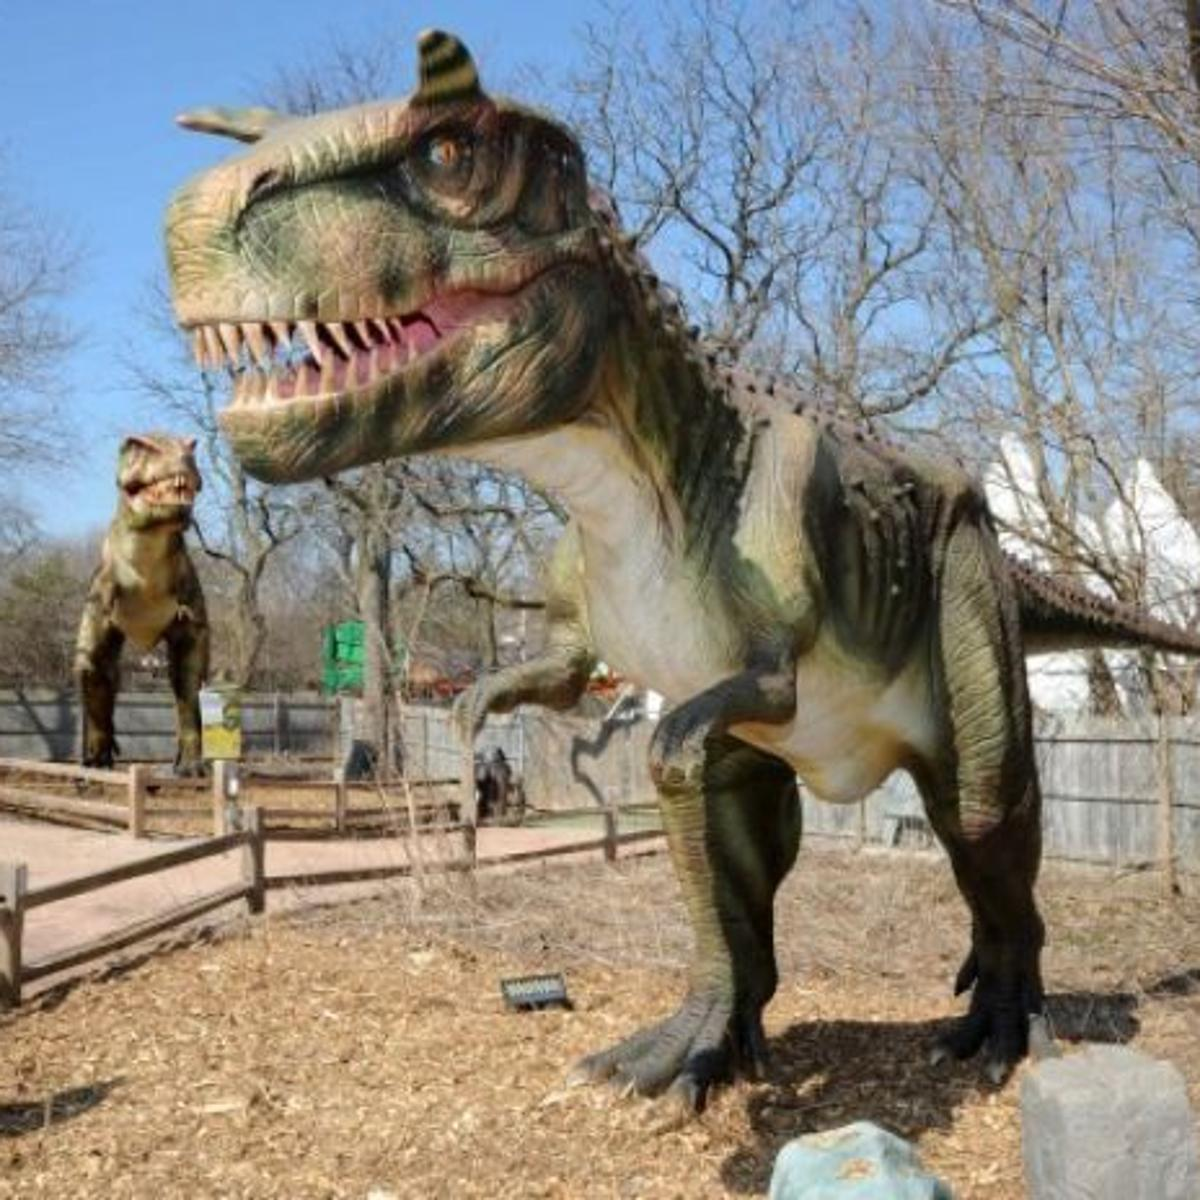 Tall Tails Brookfield Zoo Offers Family Excitement From Dining To Dinosaurs Destinations Nwitimes Com